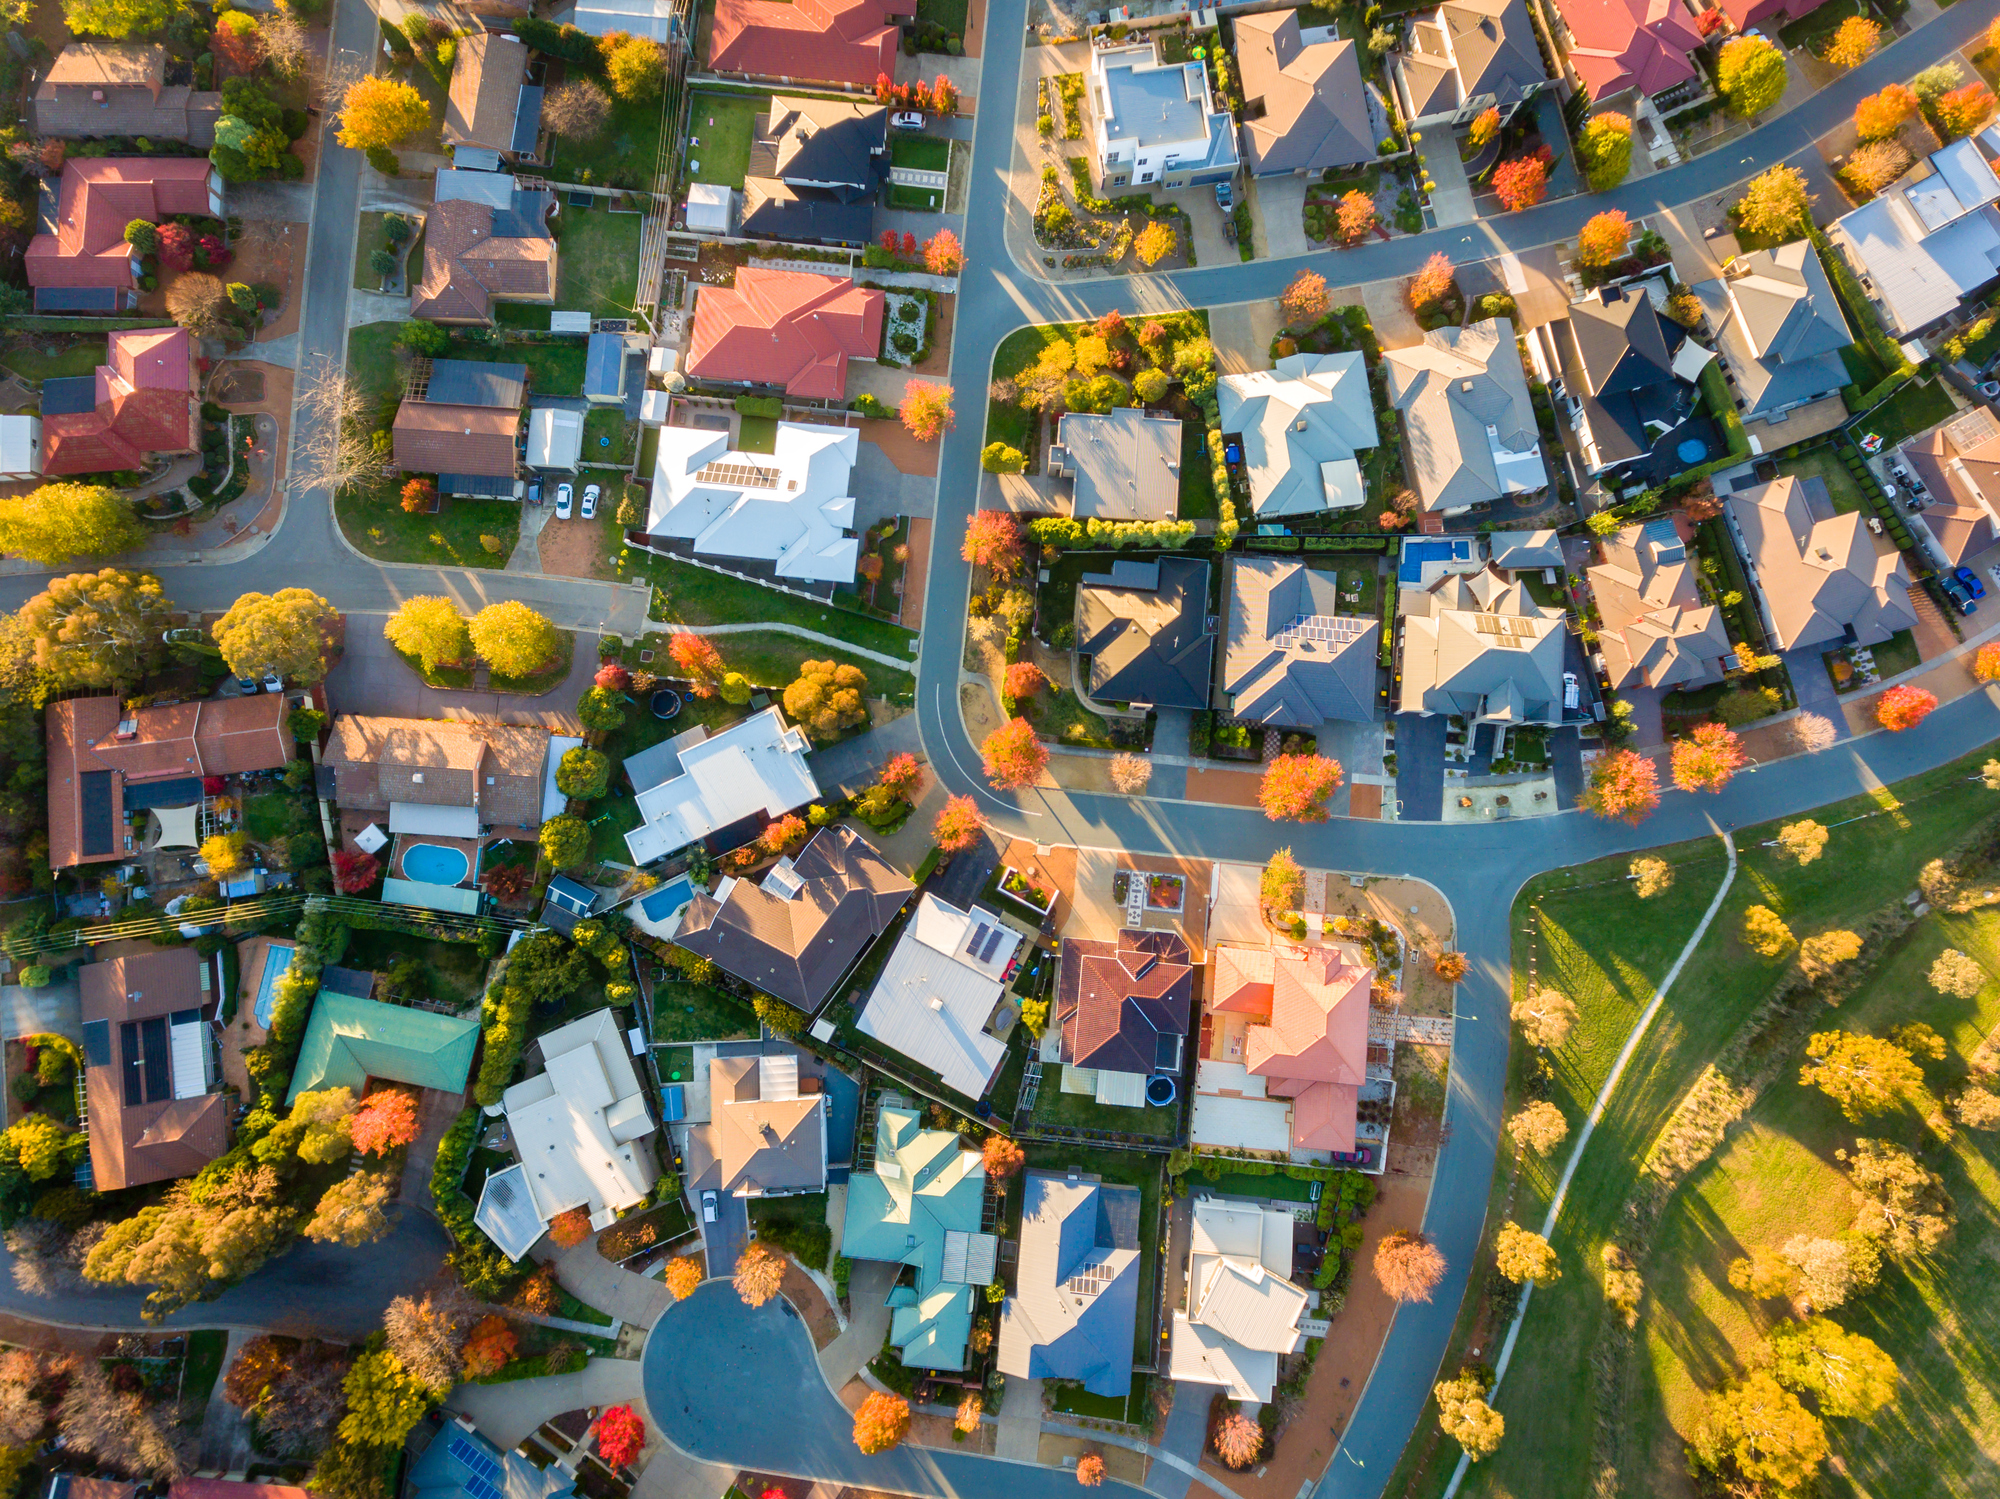 Aerial photo of a housing community